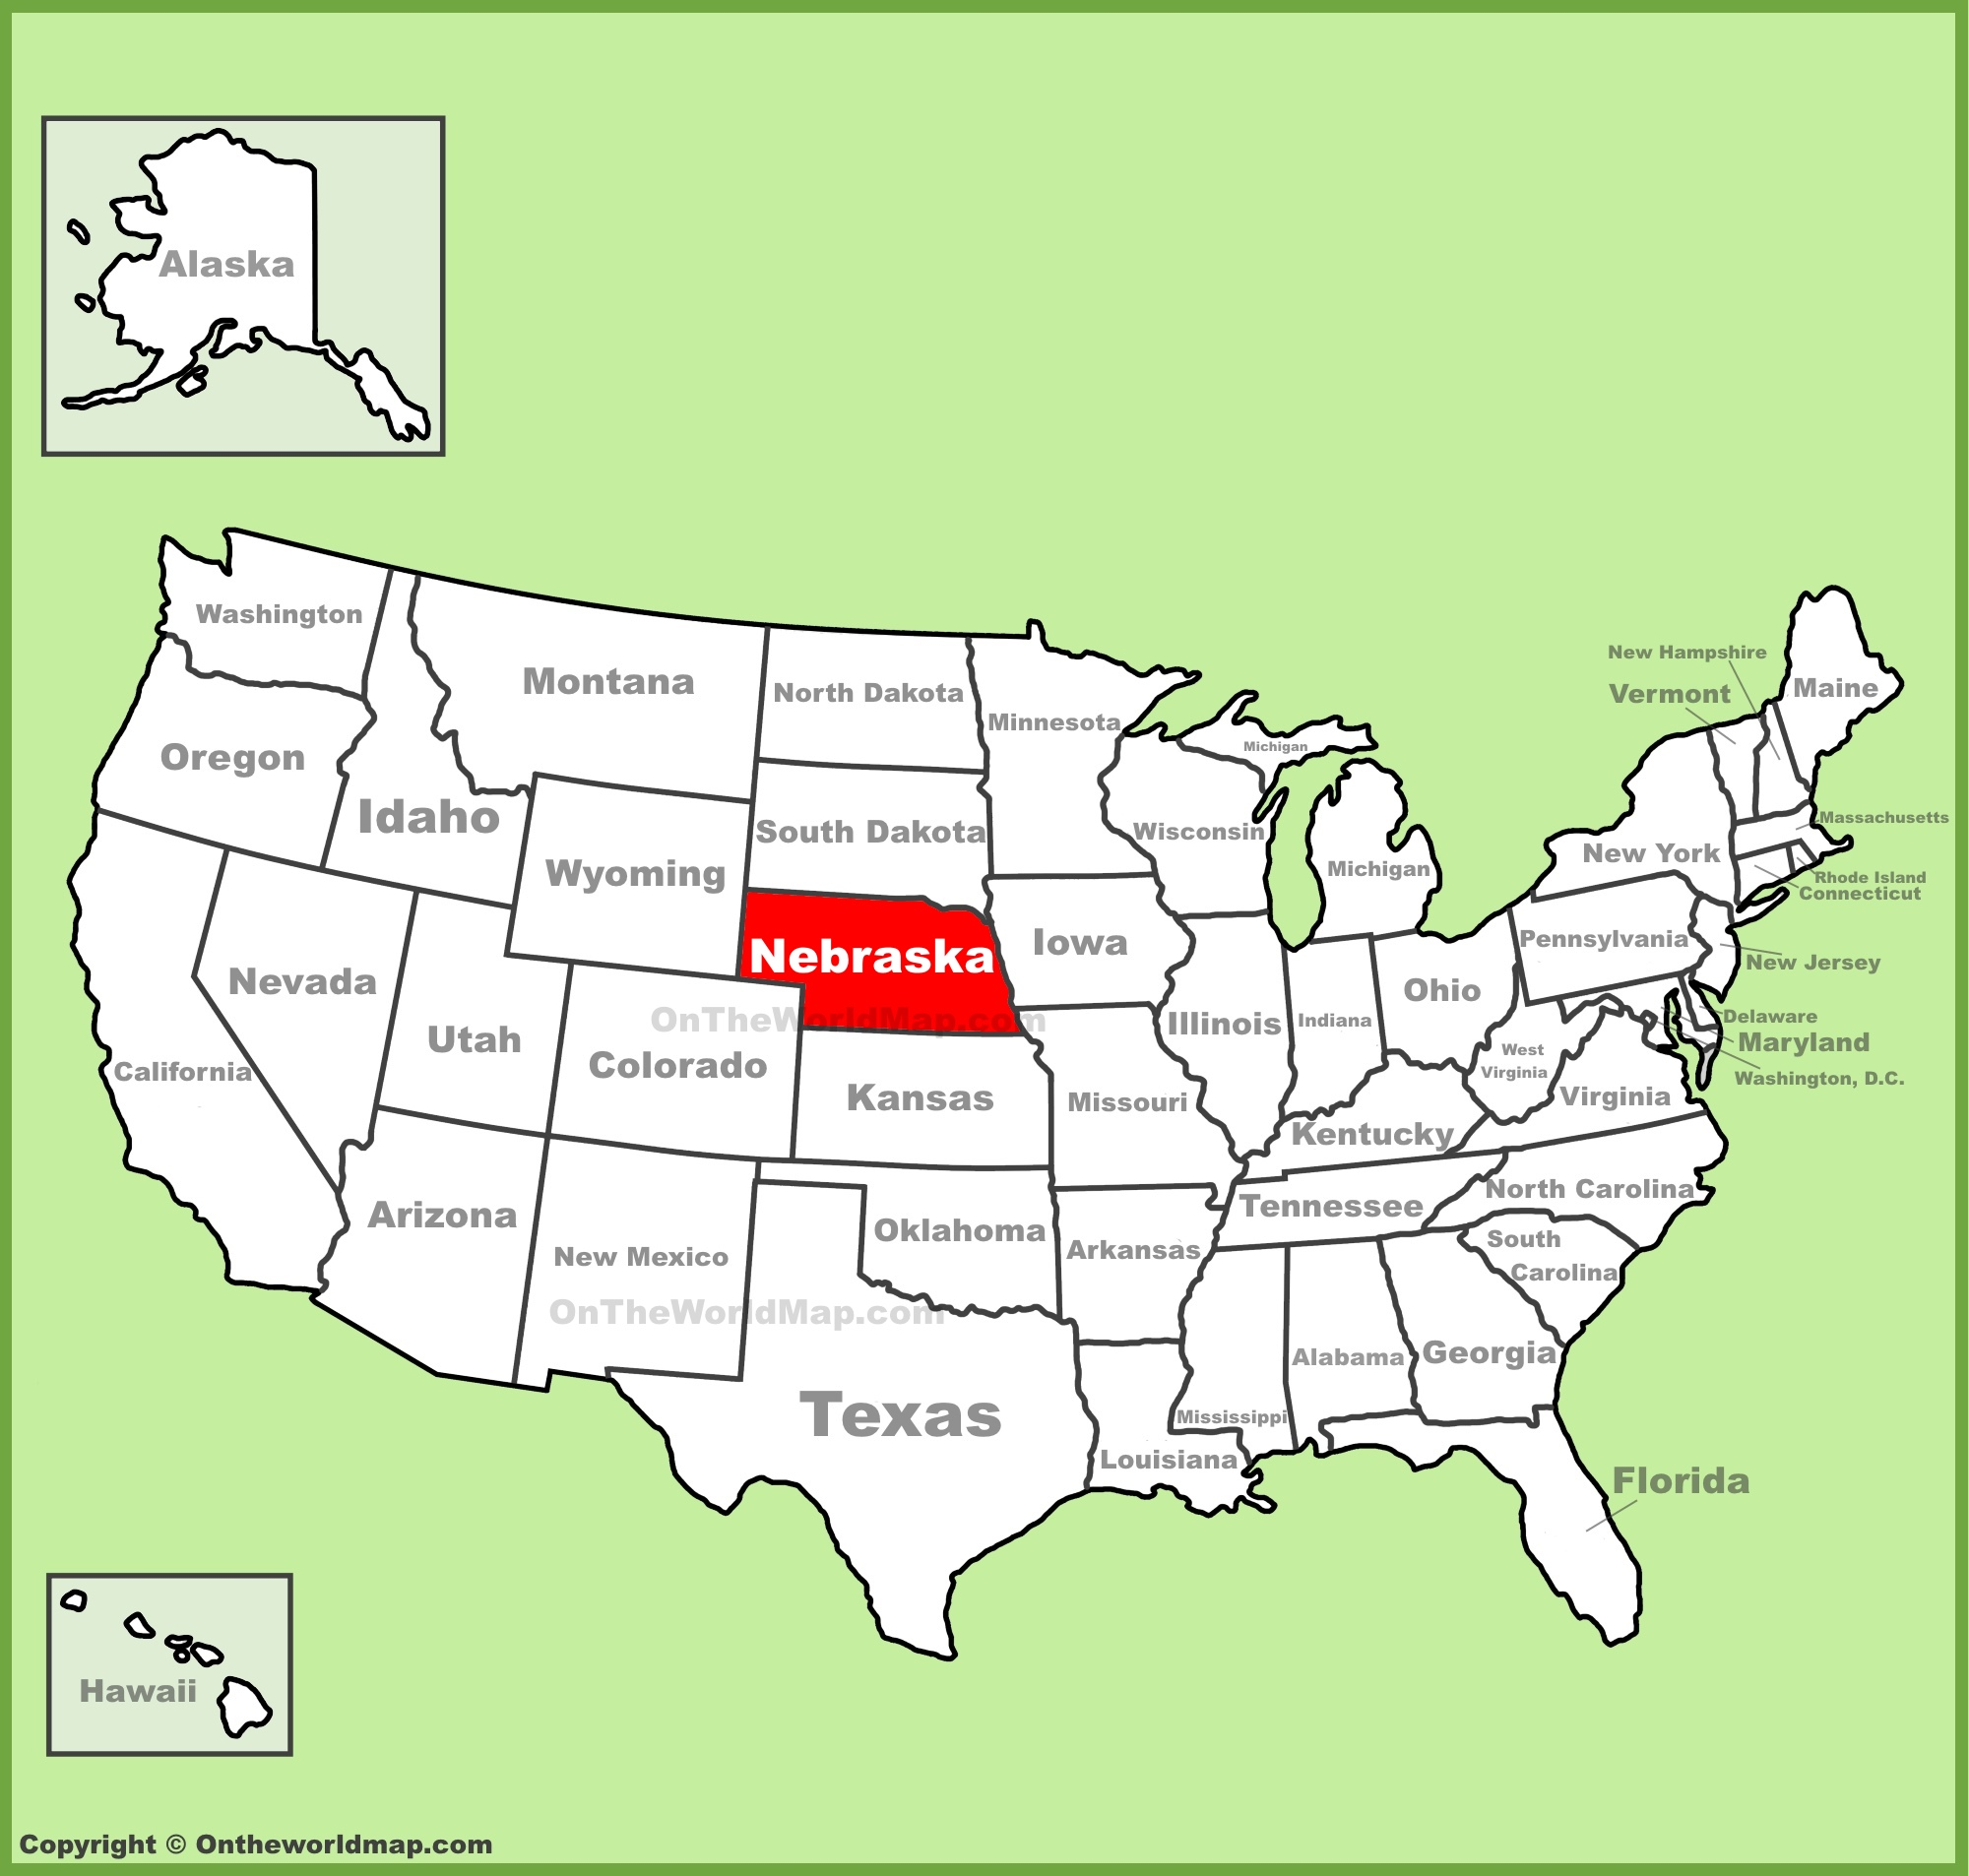 Nebraska Location On The US Map - Nebraska on the us map